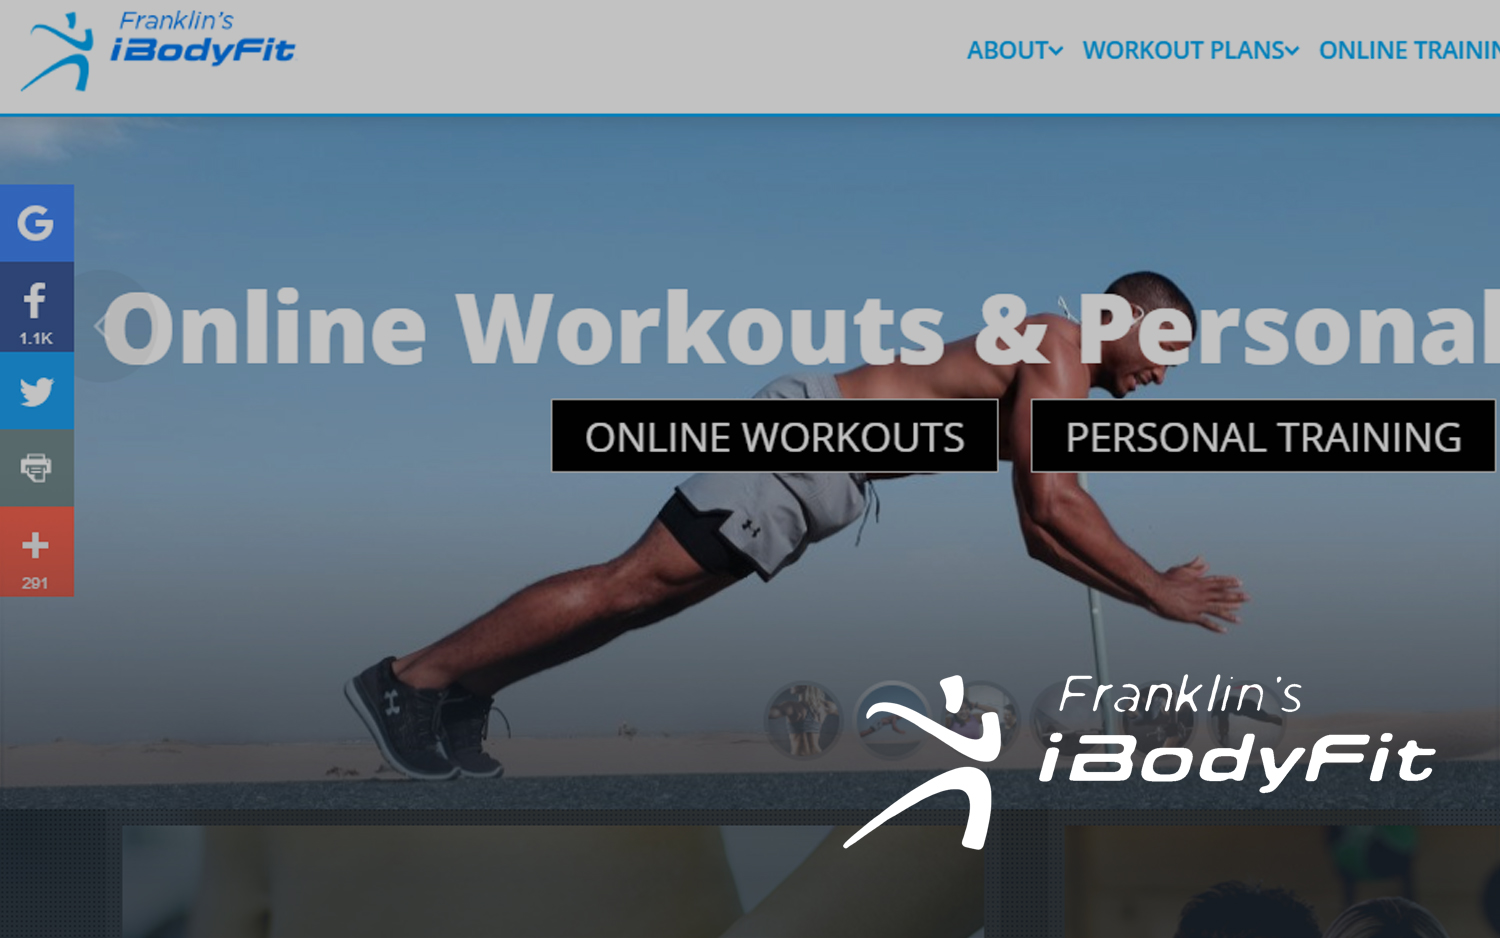 Best Online Fitness Services 2019 - Training and Workout